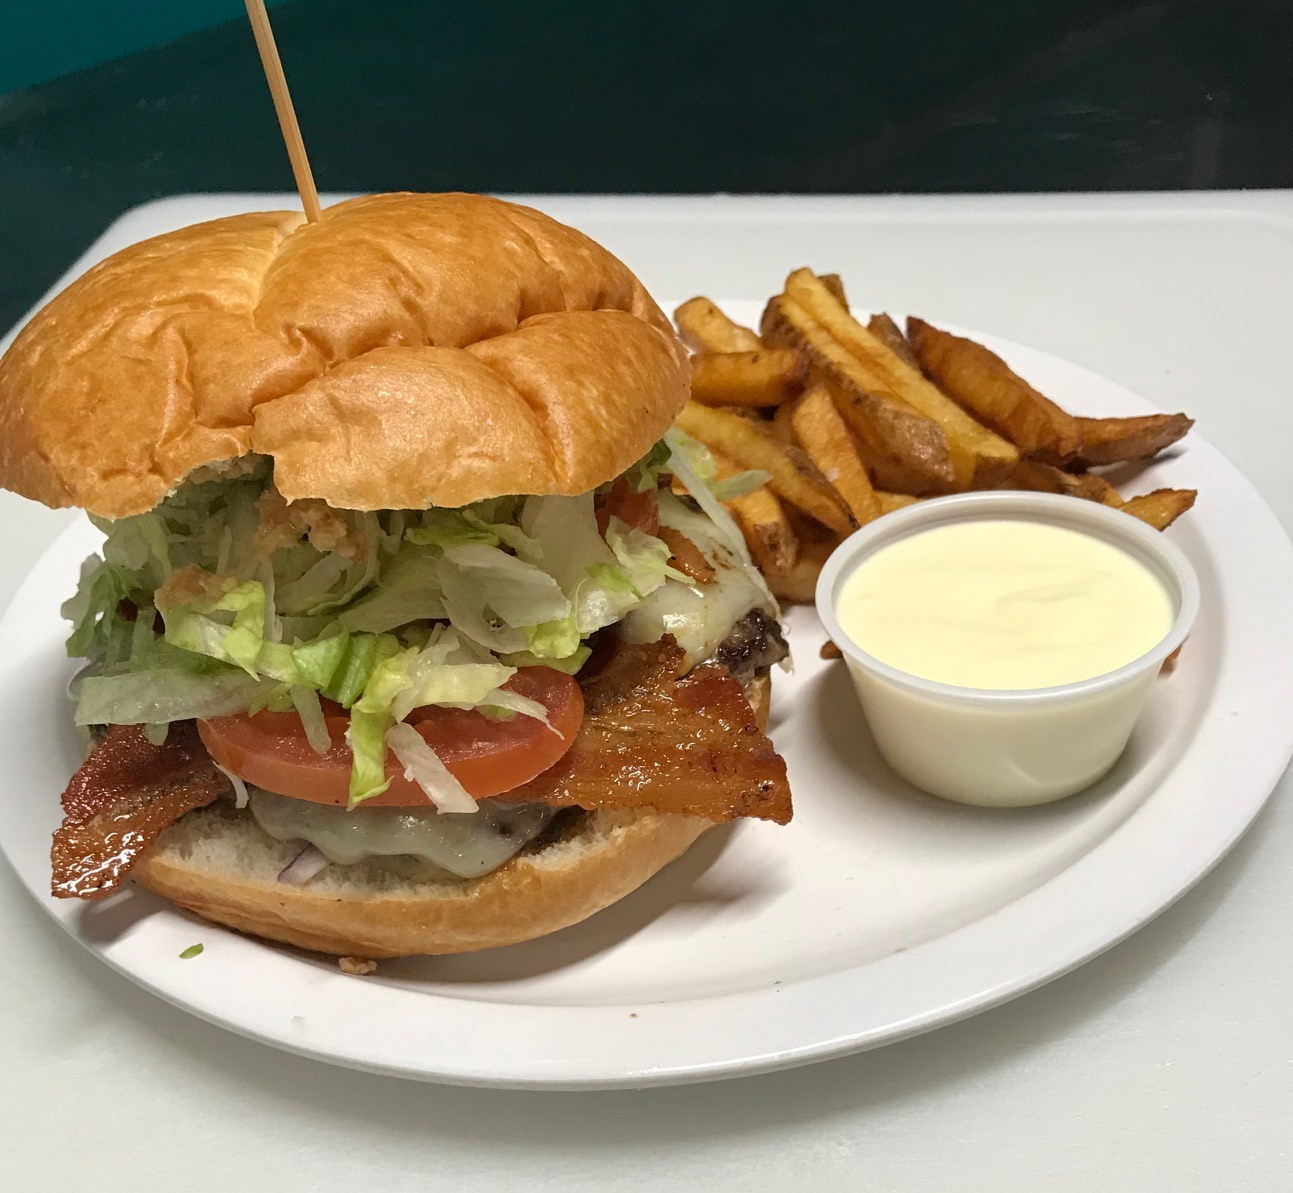 bacon cheeseburger with lettuce, and tomato on plate with side of mayo and french fries